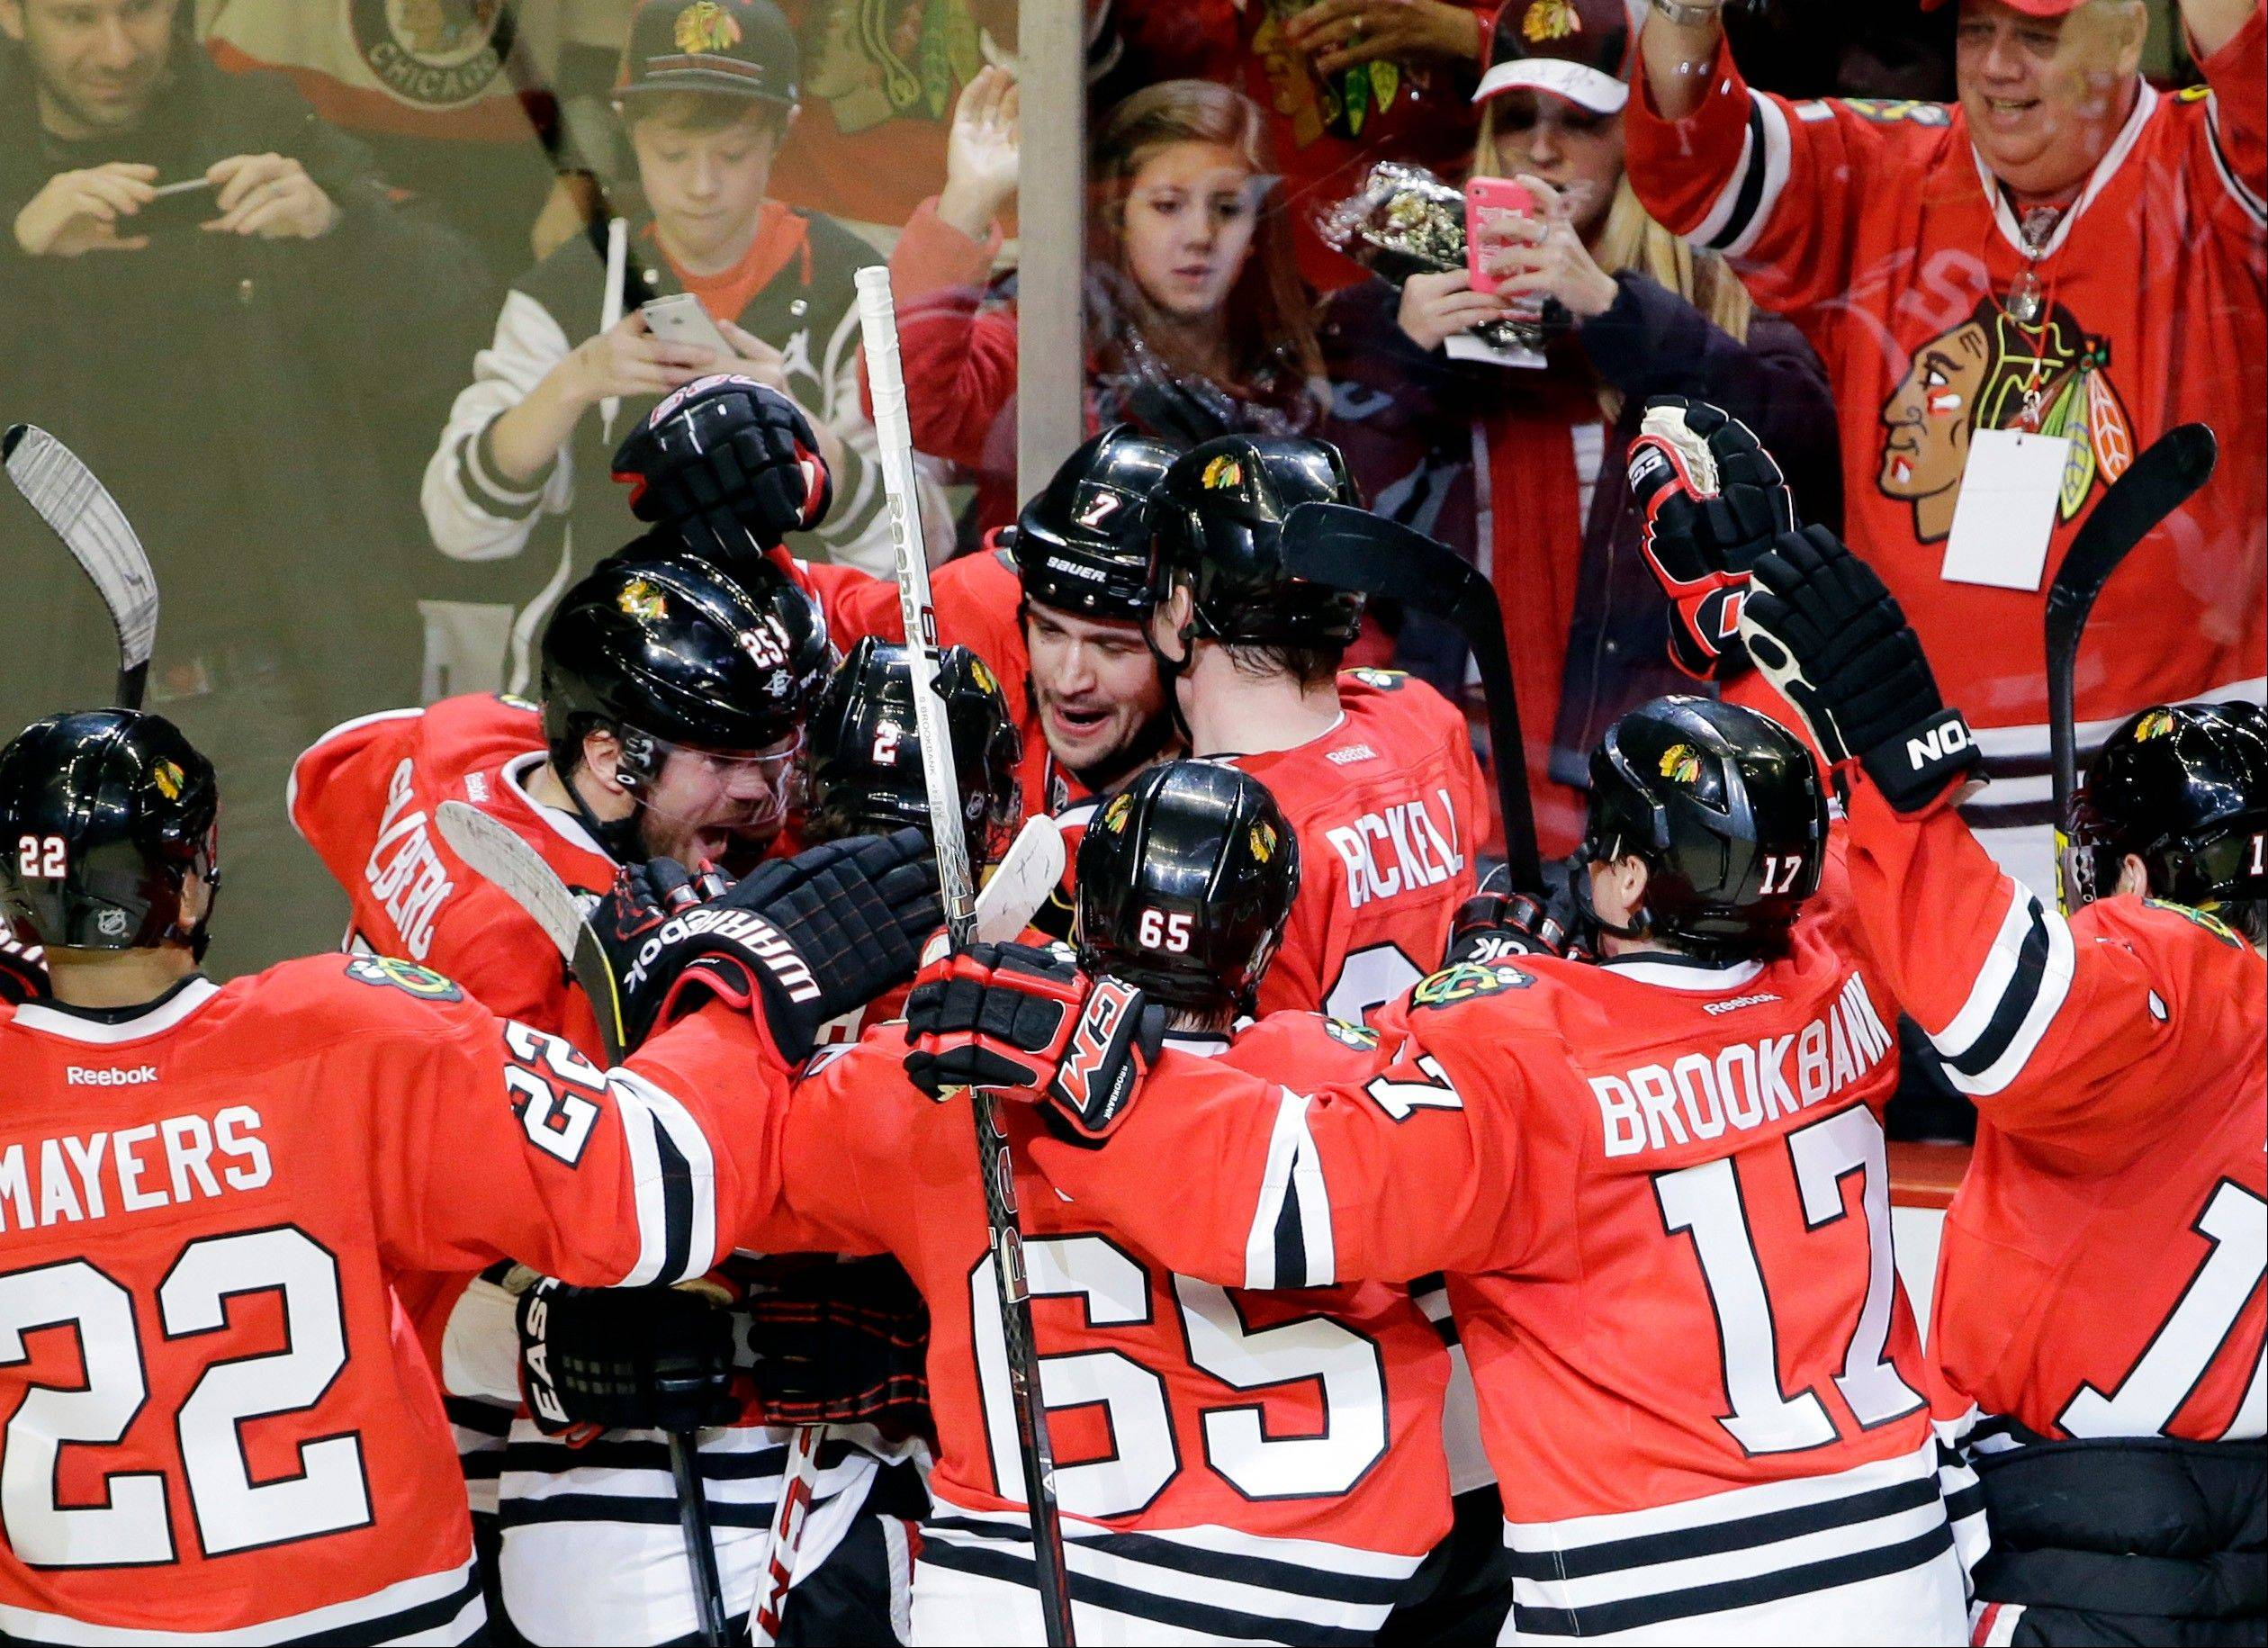 Chicago Blackhawks' Brent Seabrook, center, celebrates with teammates after scoring his game-winning goal during the overtime of an NHL hockey game against the Columbus Blue Jackets in Chicago, Friday, March 1, 2013. The Blackhawks won 4-3.